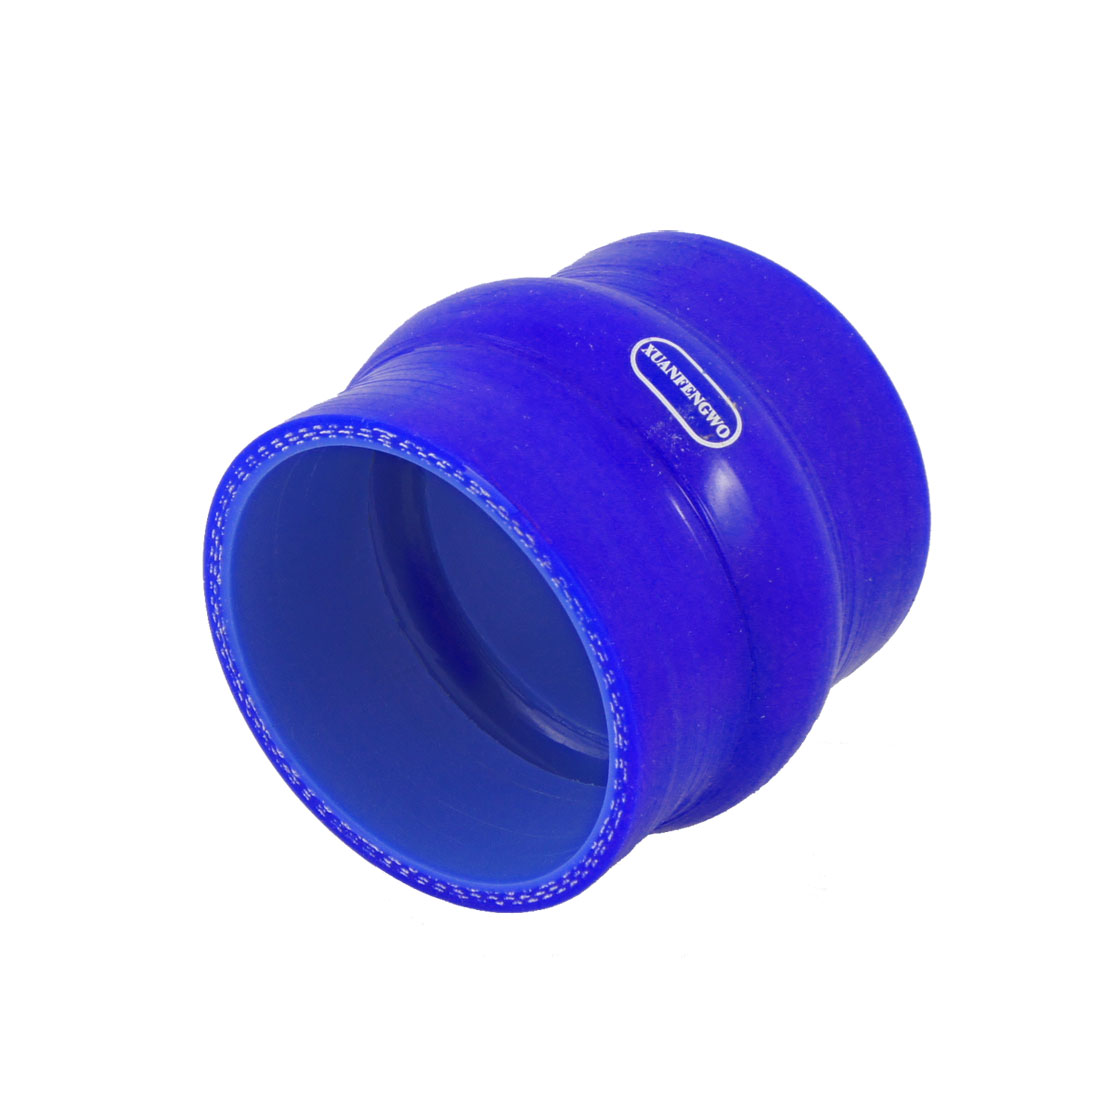 Auto 64mm Inner Diameter Turbo Intake Silicone Hump Hose Blue